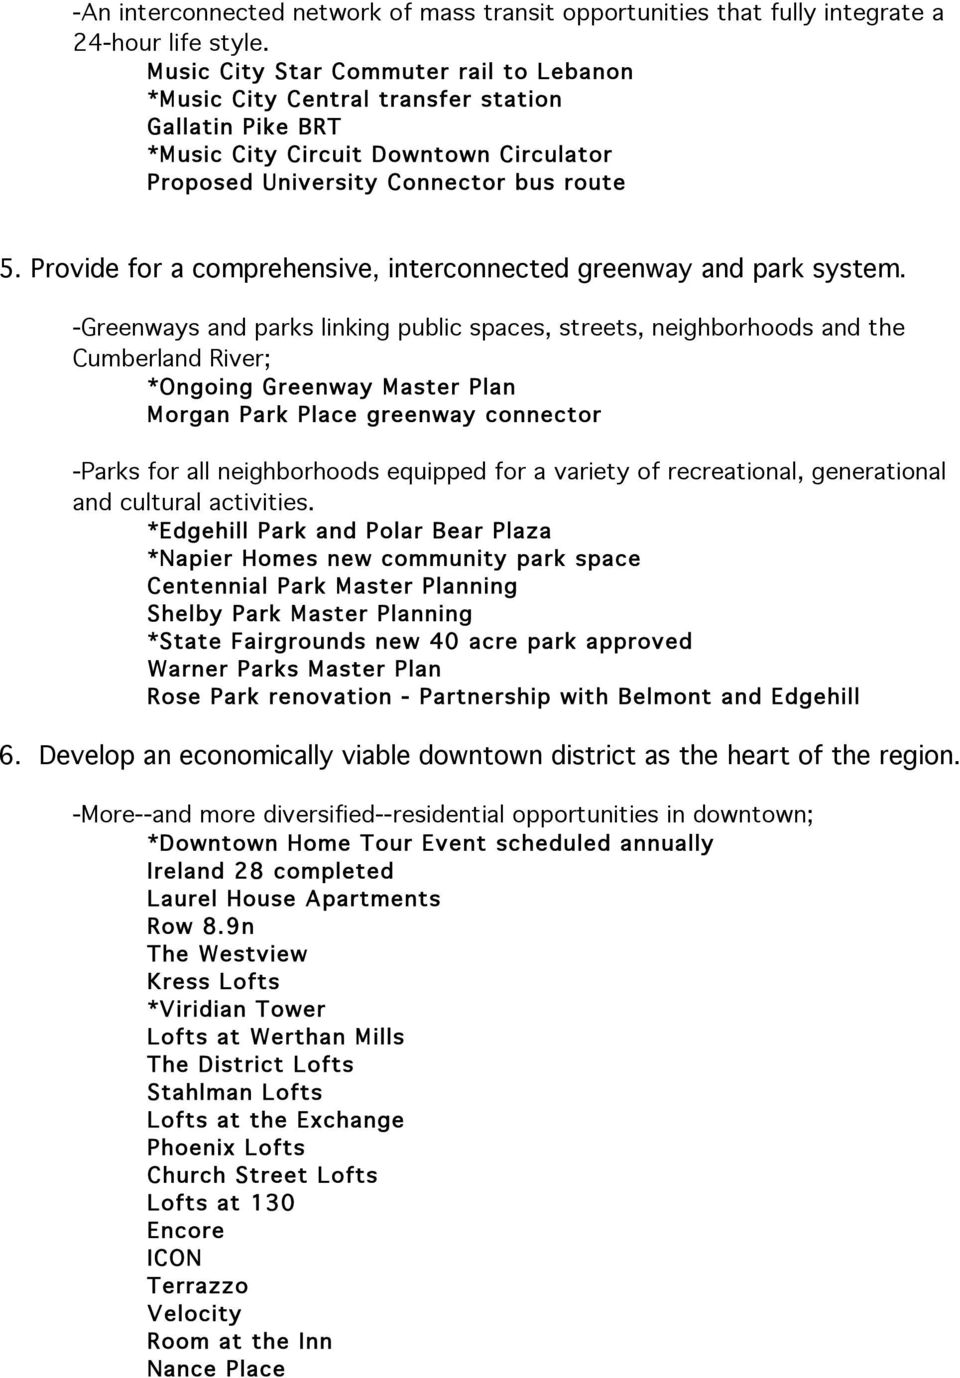 Provide for a comprehensive, interconnected greenway and park system.